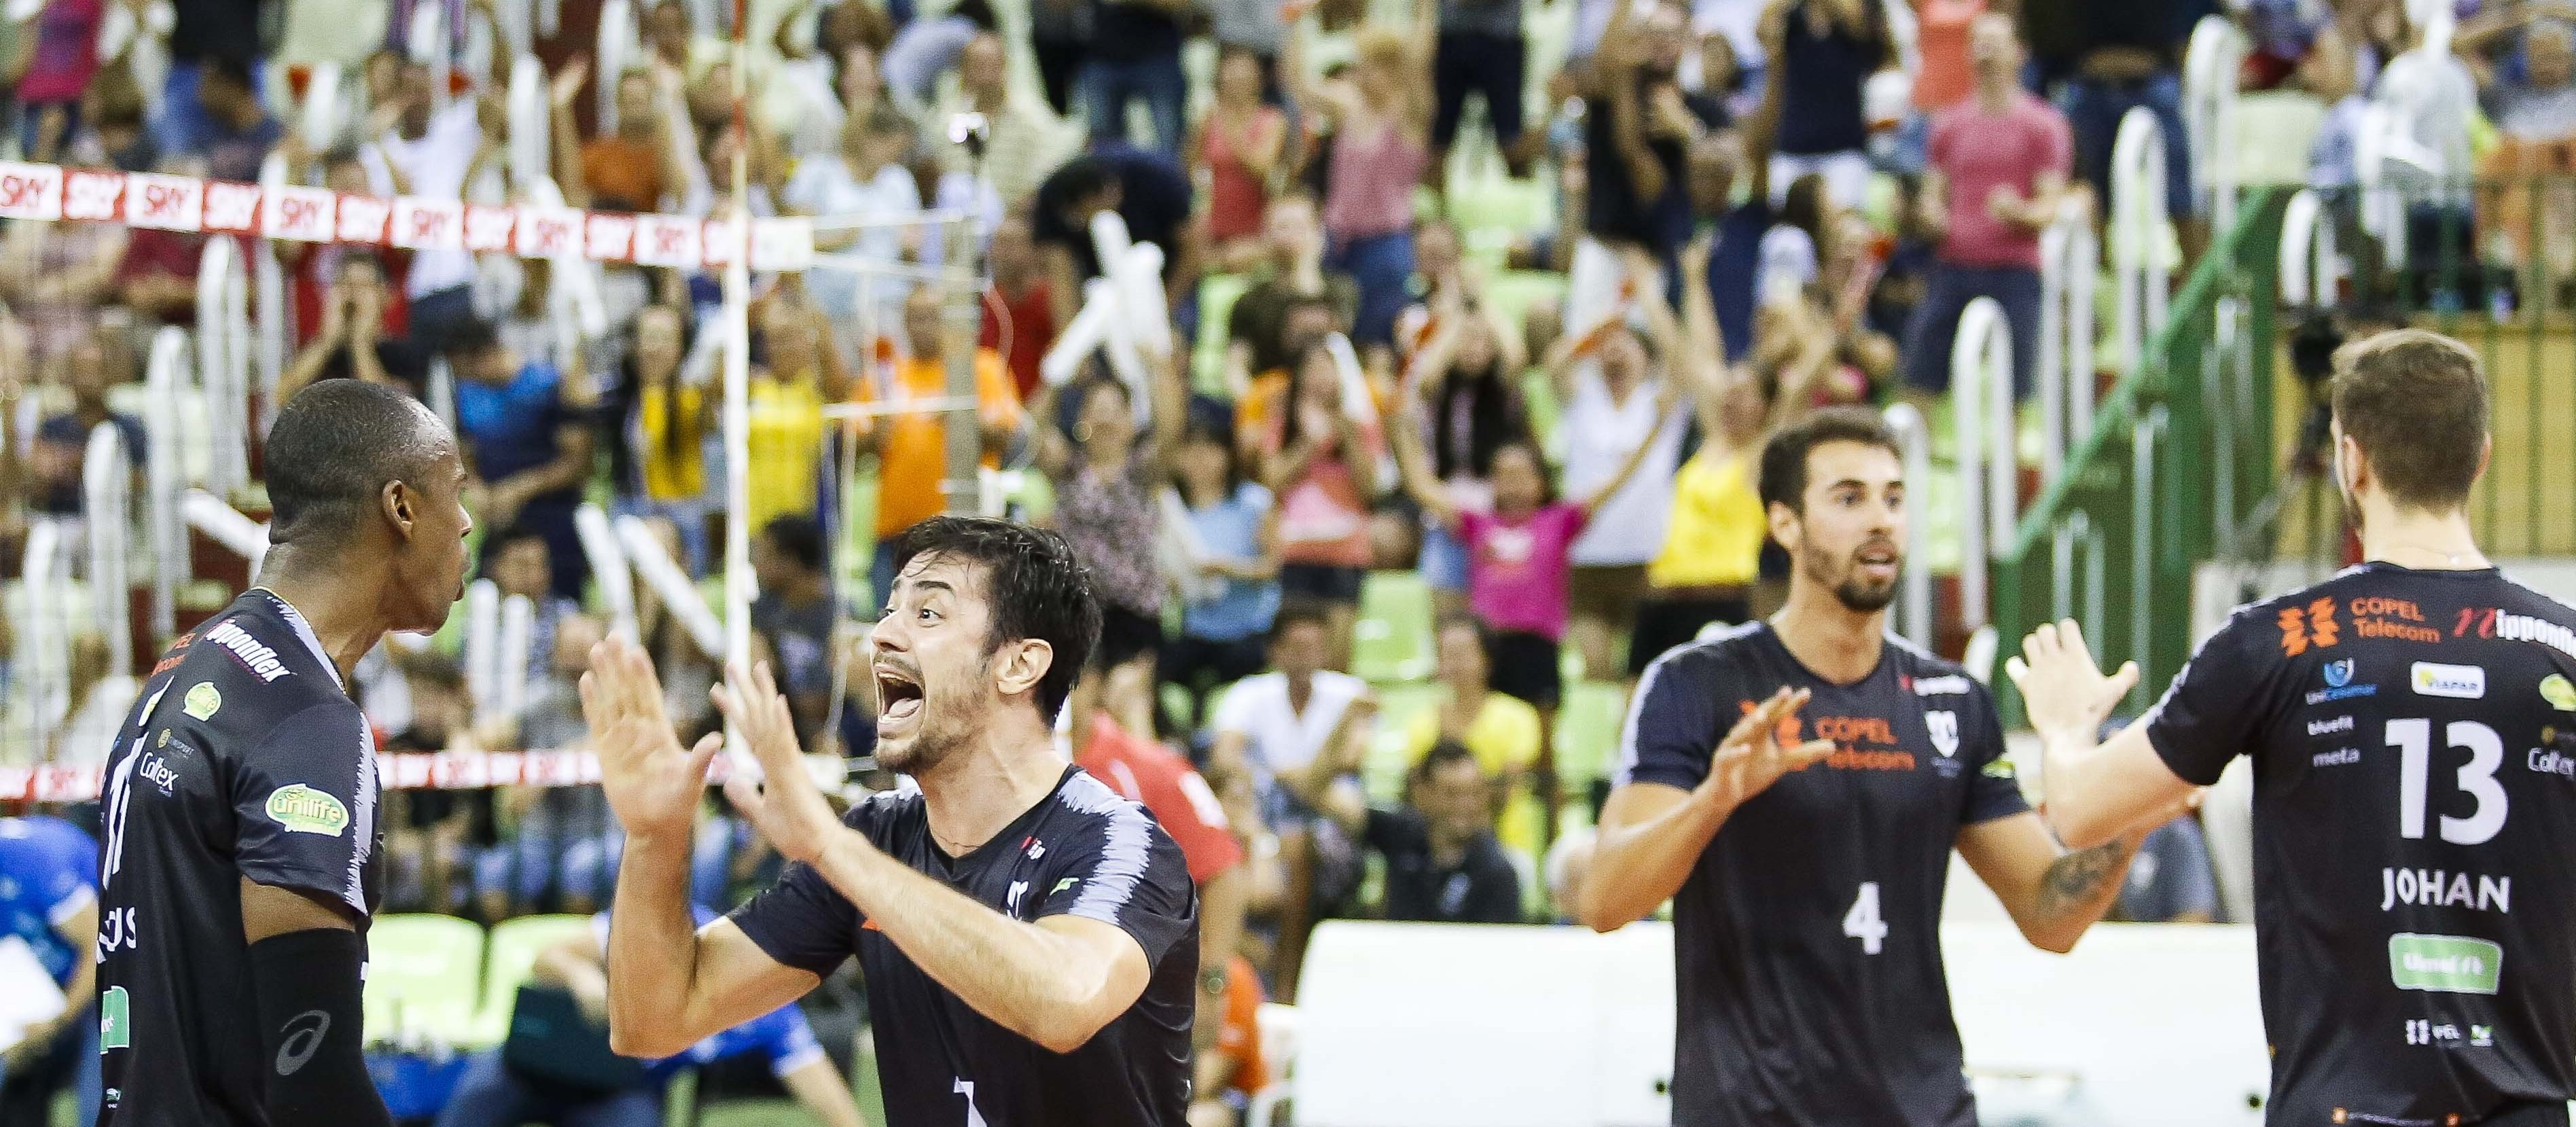 Maringá Vôlei vence o Sesi/SP e está classificado para as semifinais